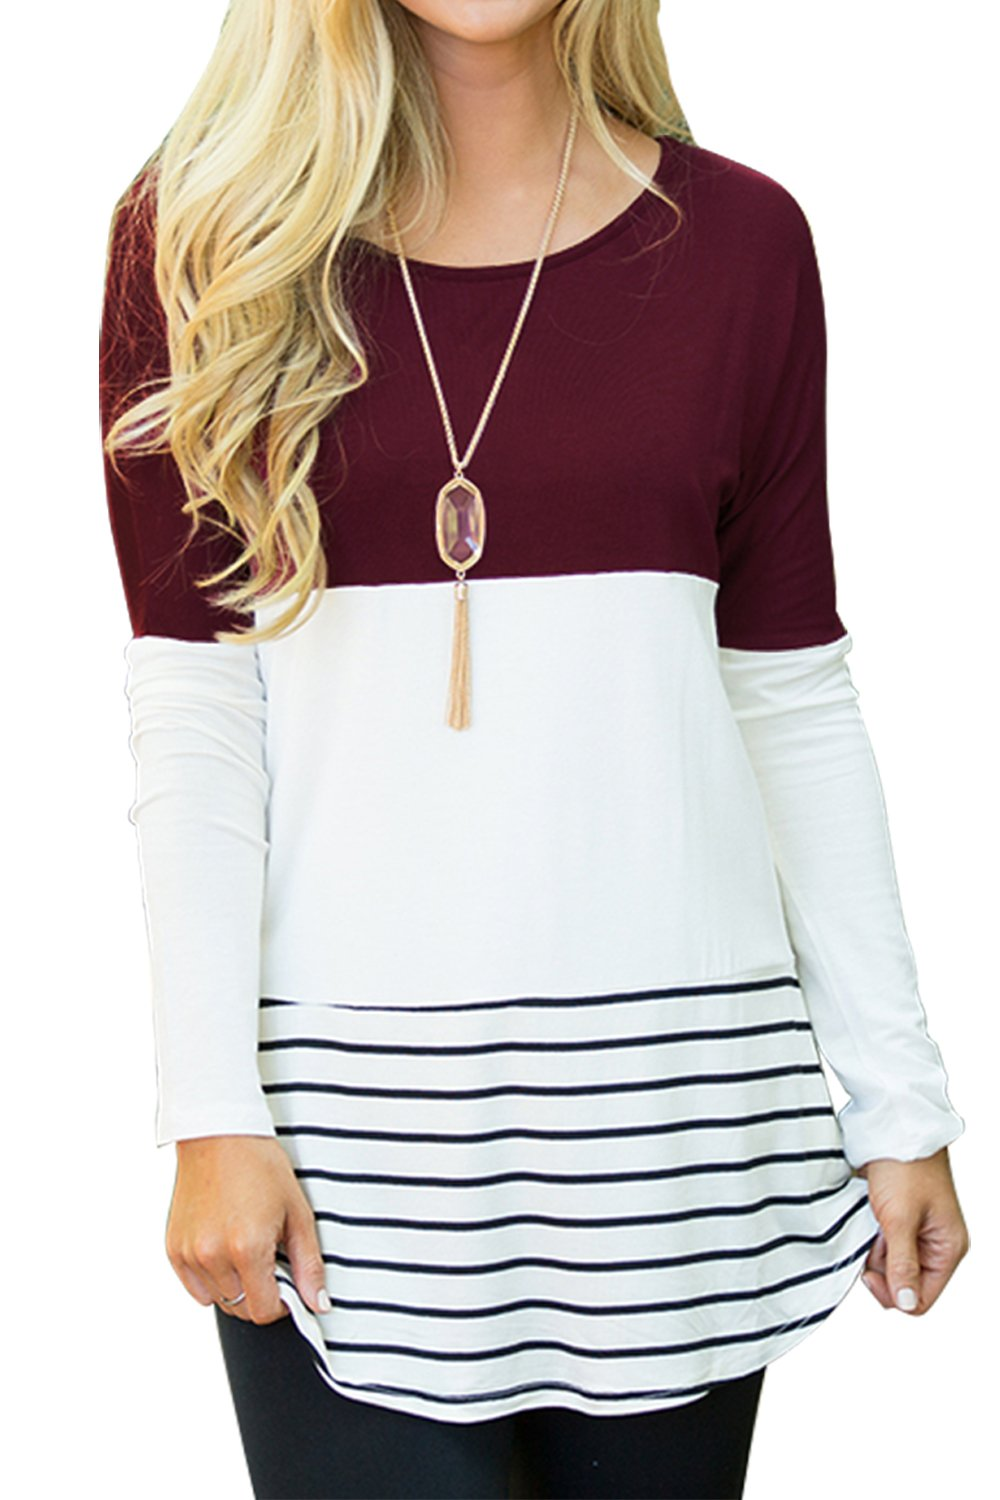 Sherosa Women's Casual Wear Striped Tops Crew Neck Back Lace Shirts (Wine Red,XL)